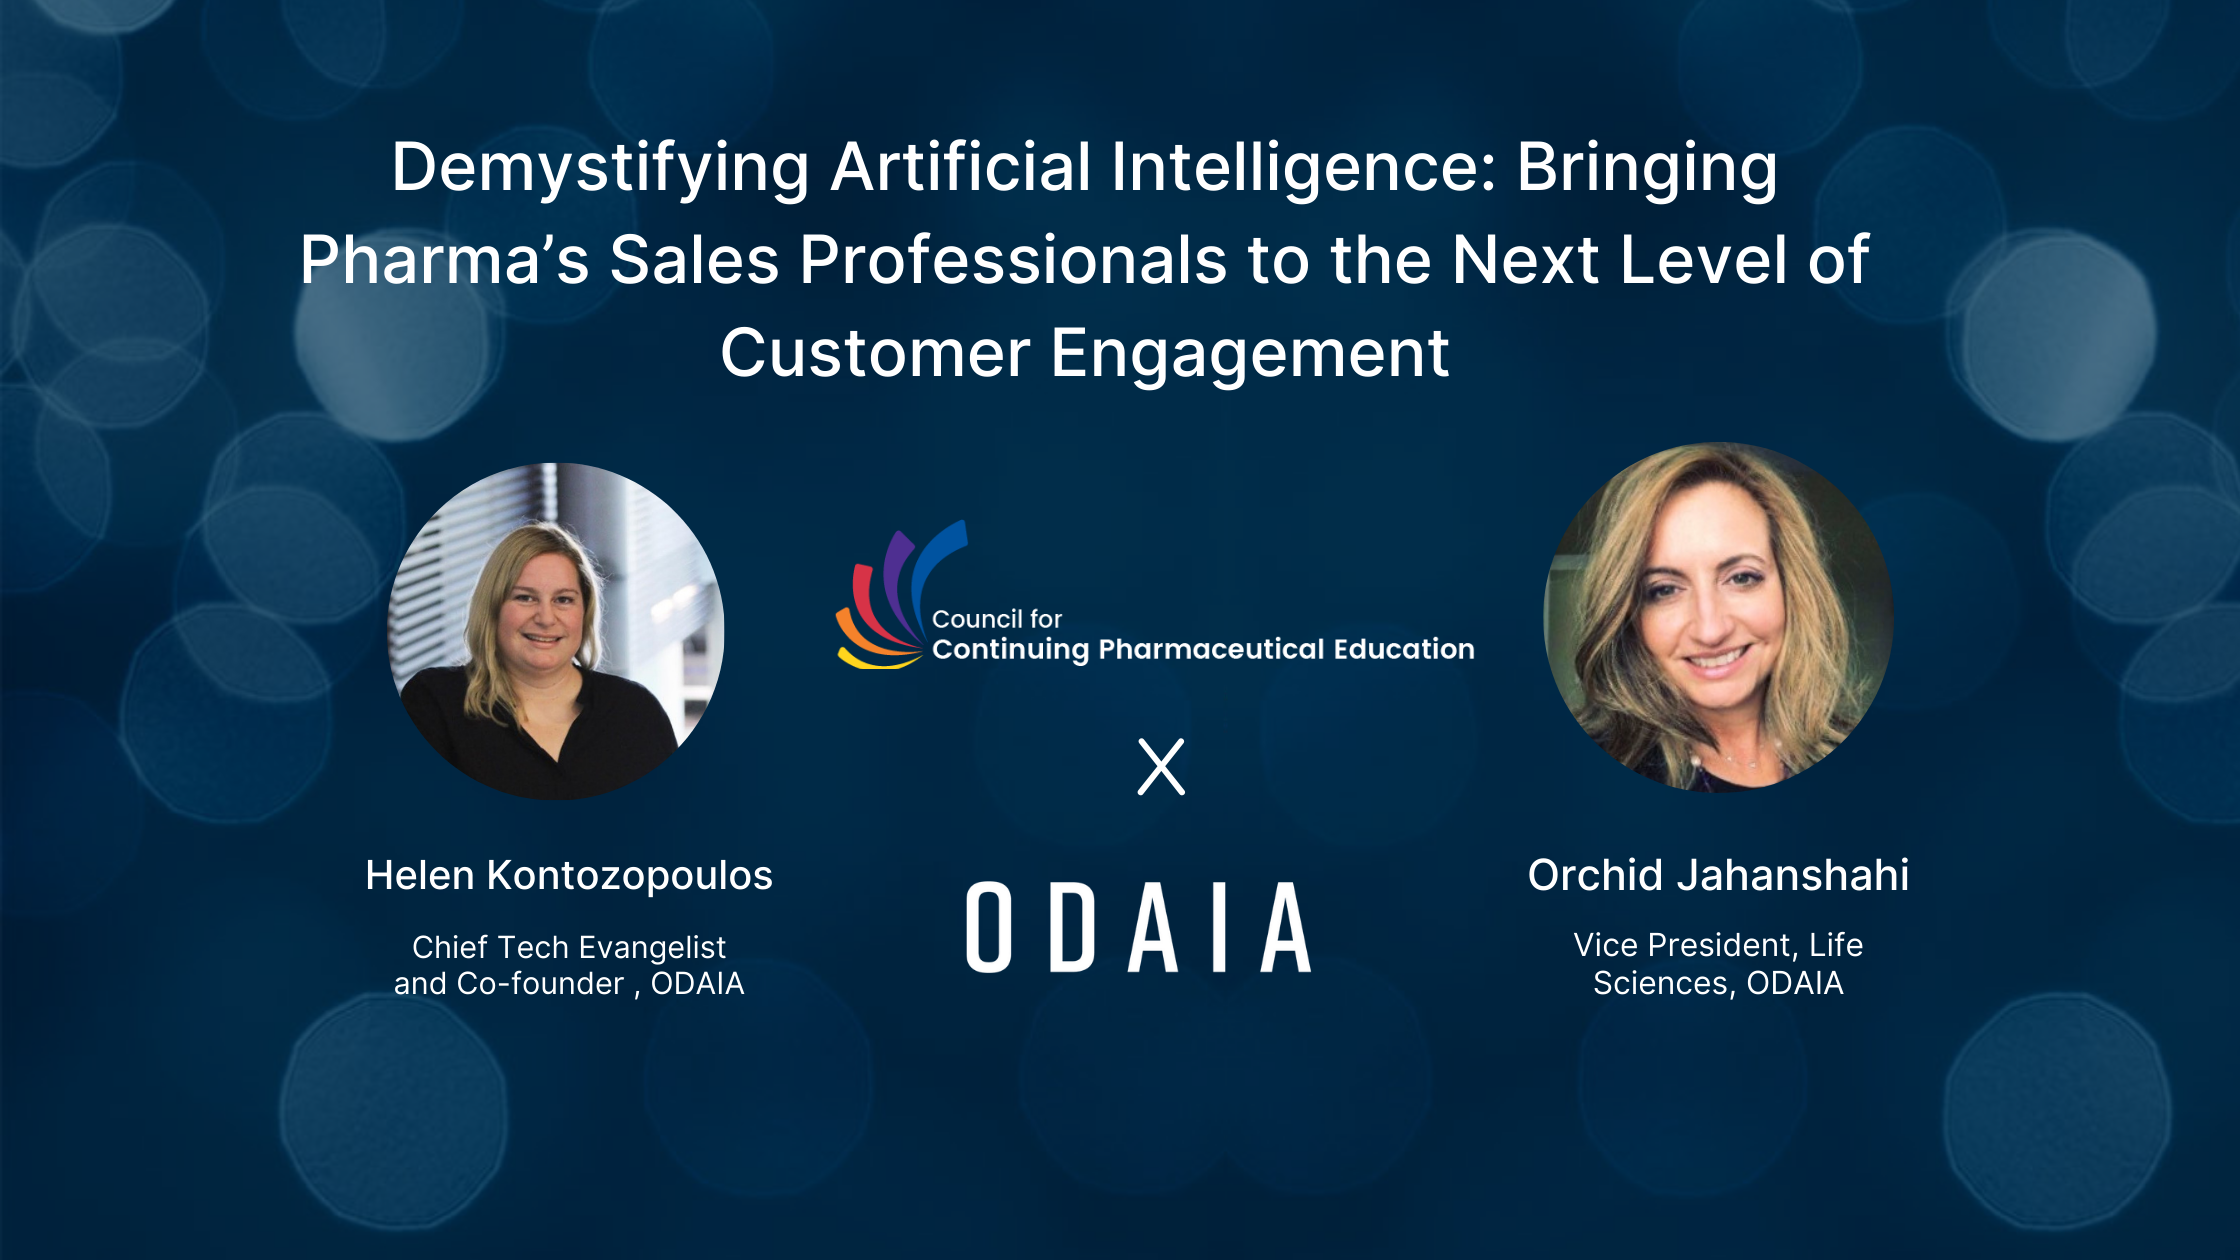 Demystifying Artificial Intelligence: Bringing Pharma's Sales Professionals to the Next Level of Customer Engagement